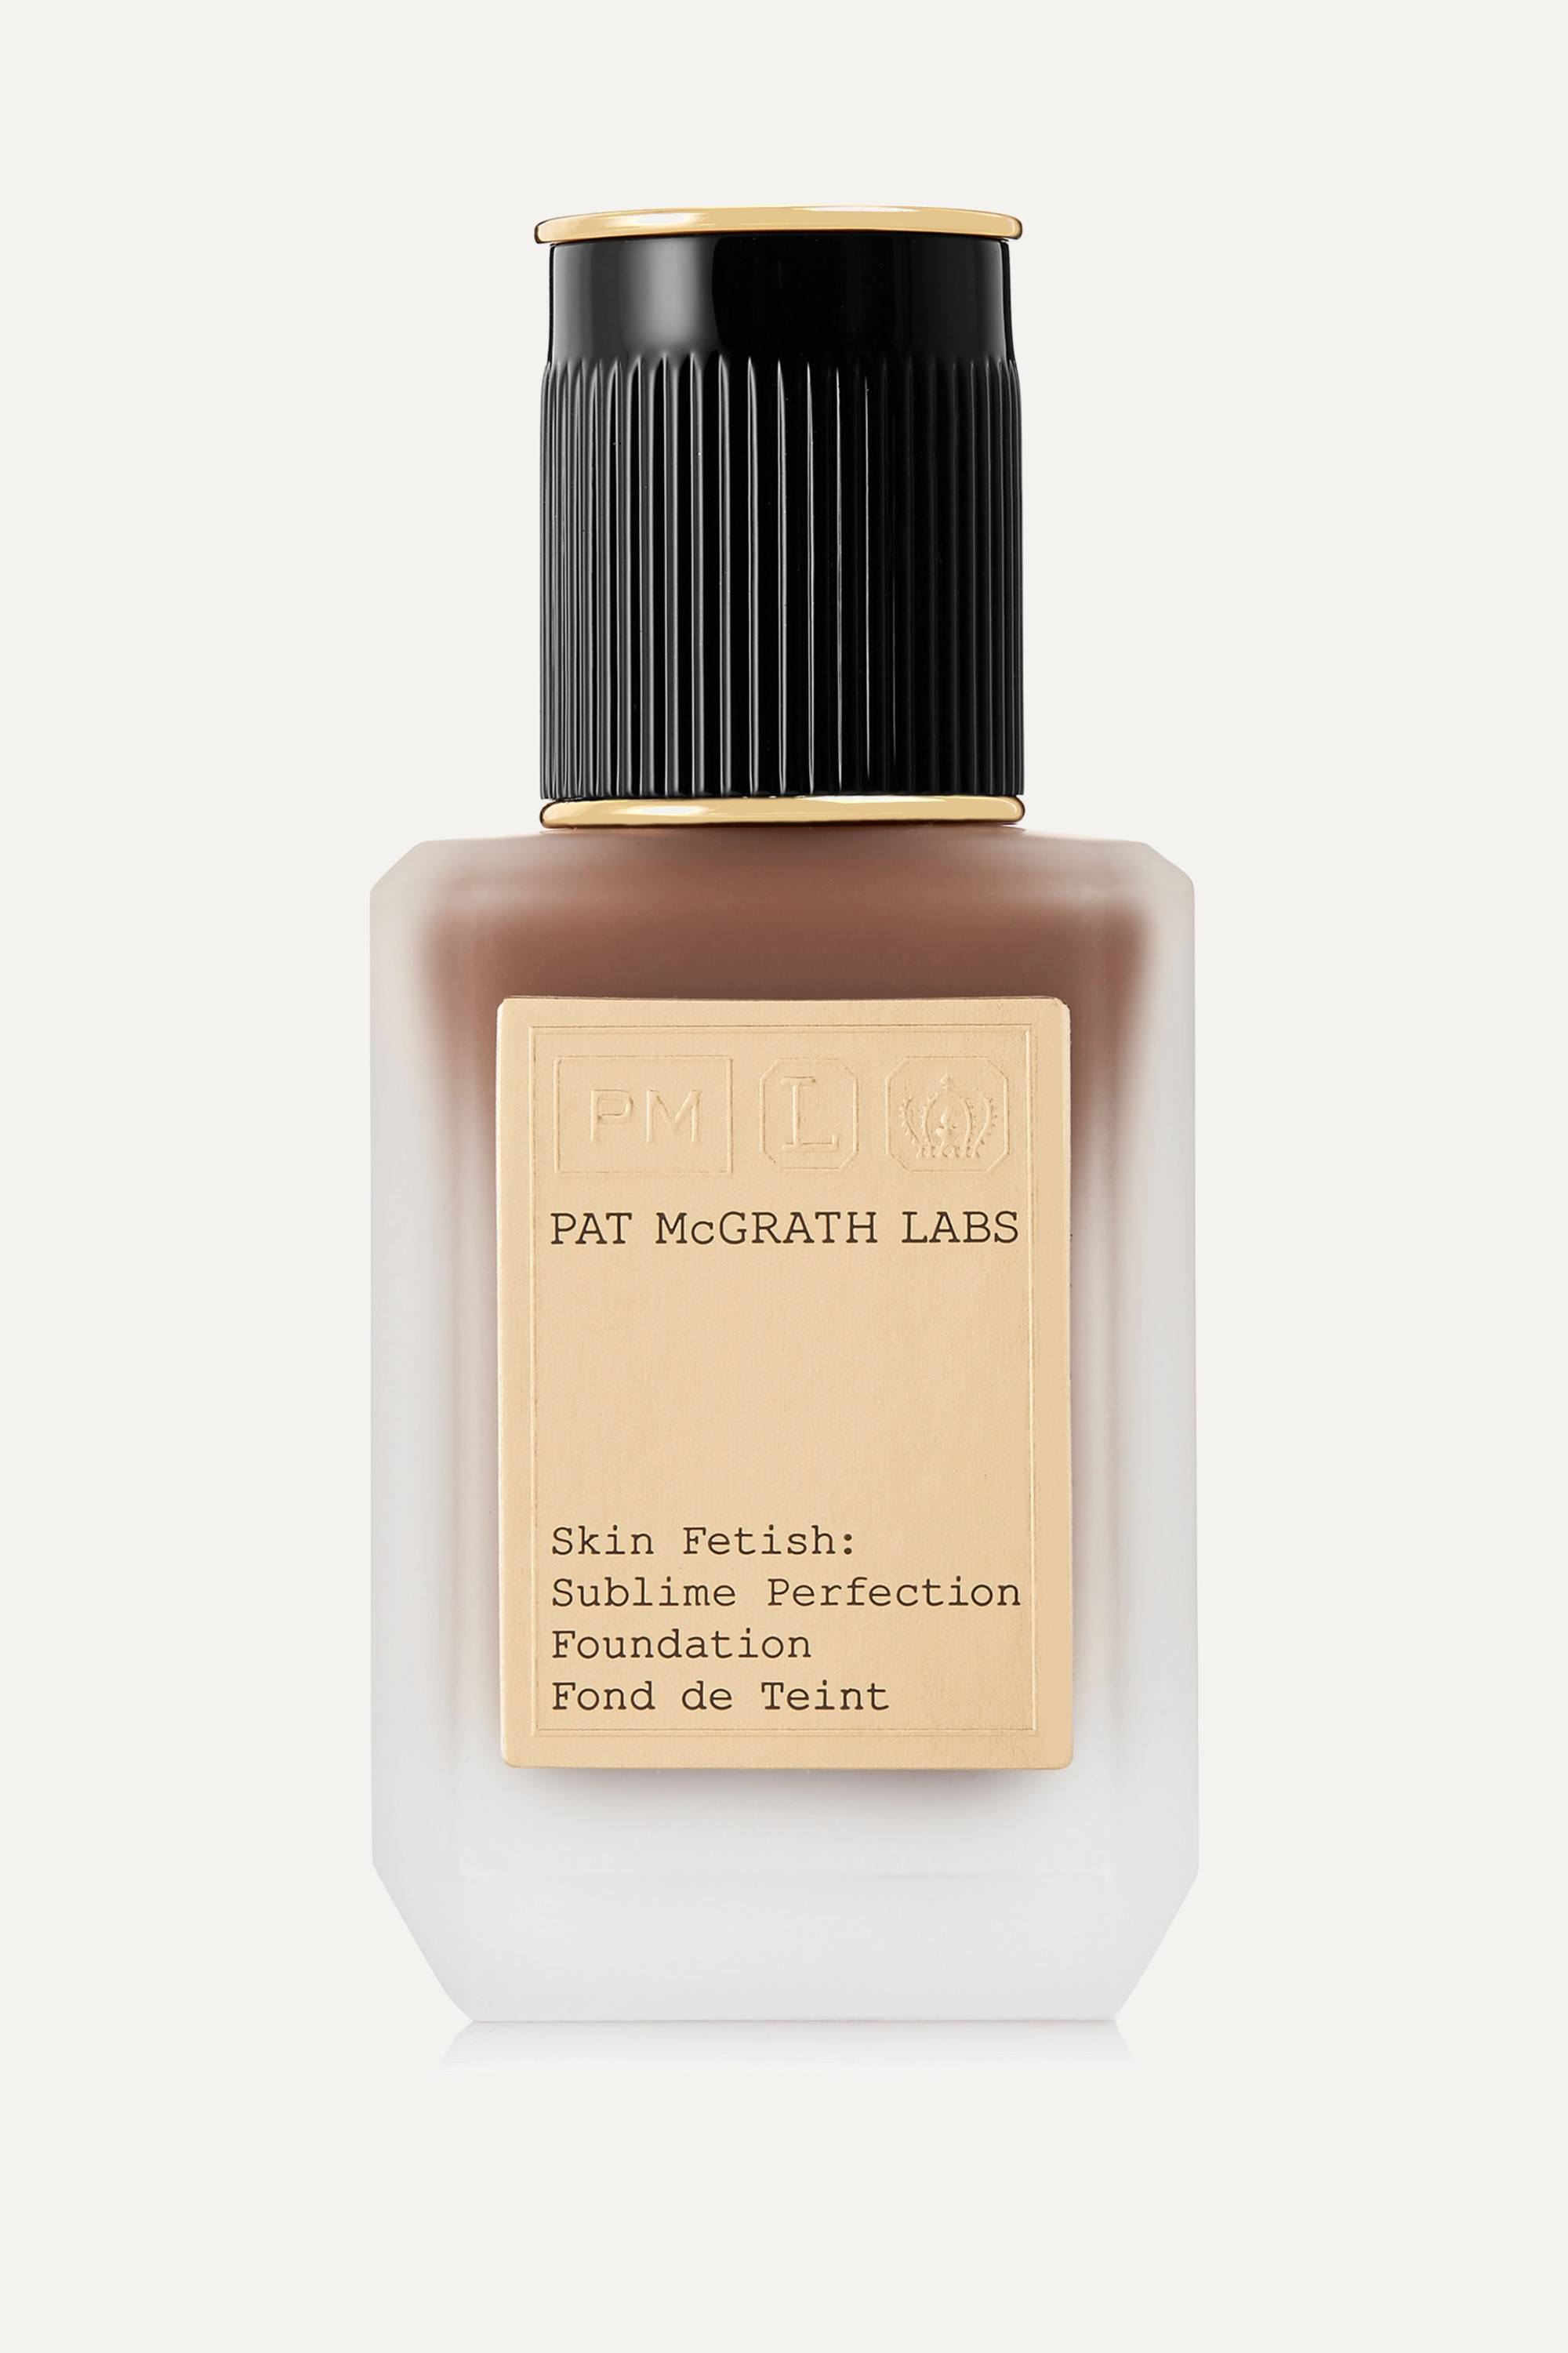 Pat McGrath Labs - Skin Fetish: Sublime Perfection Foundation